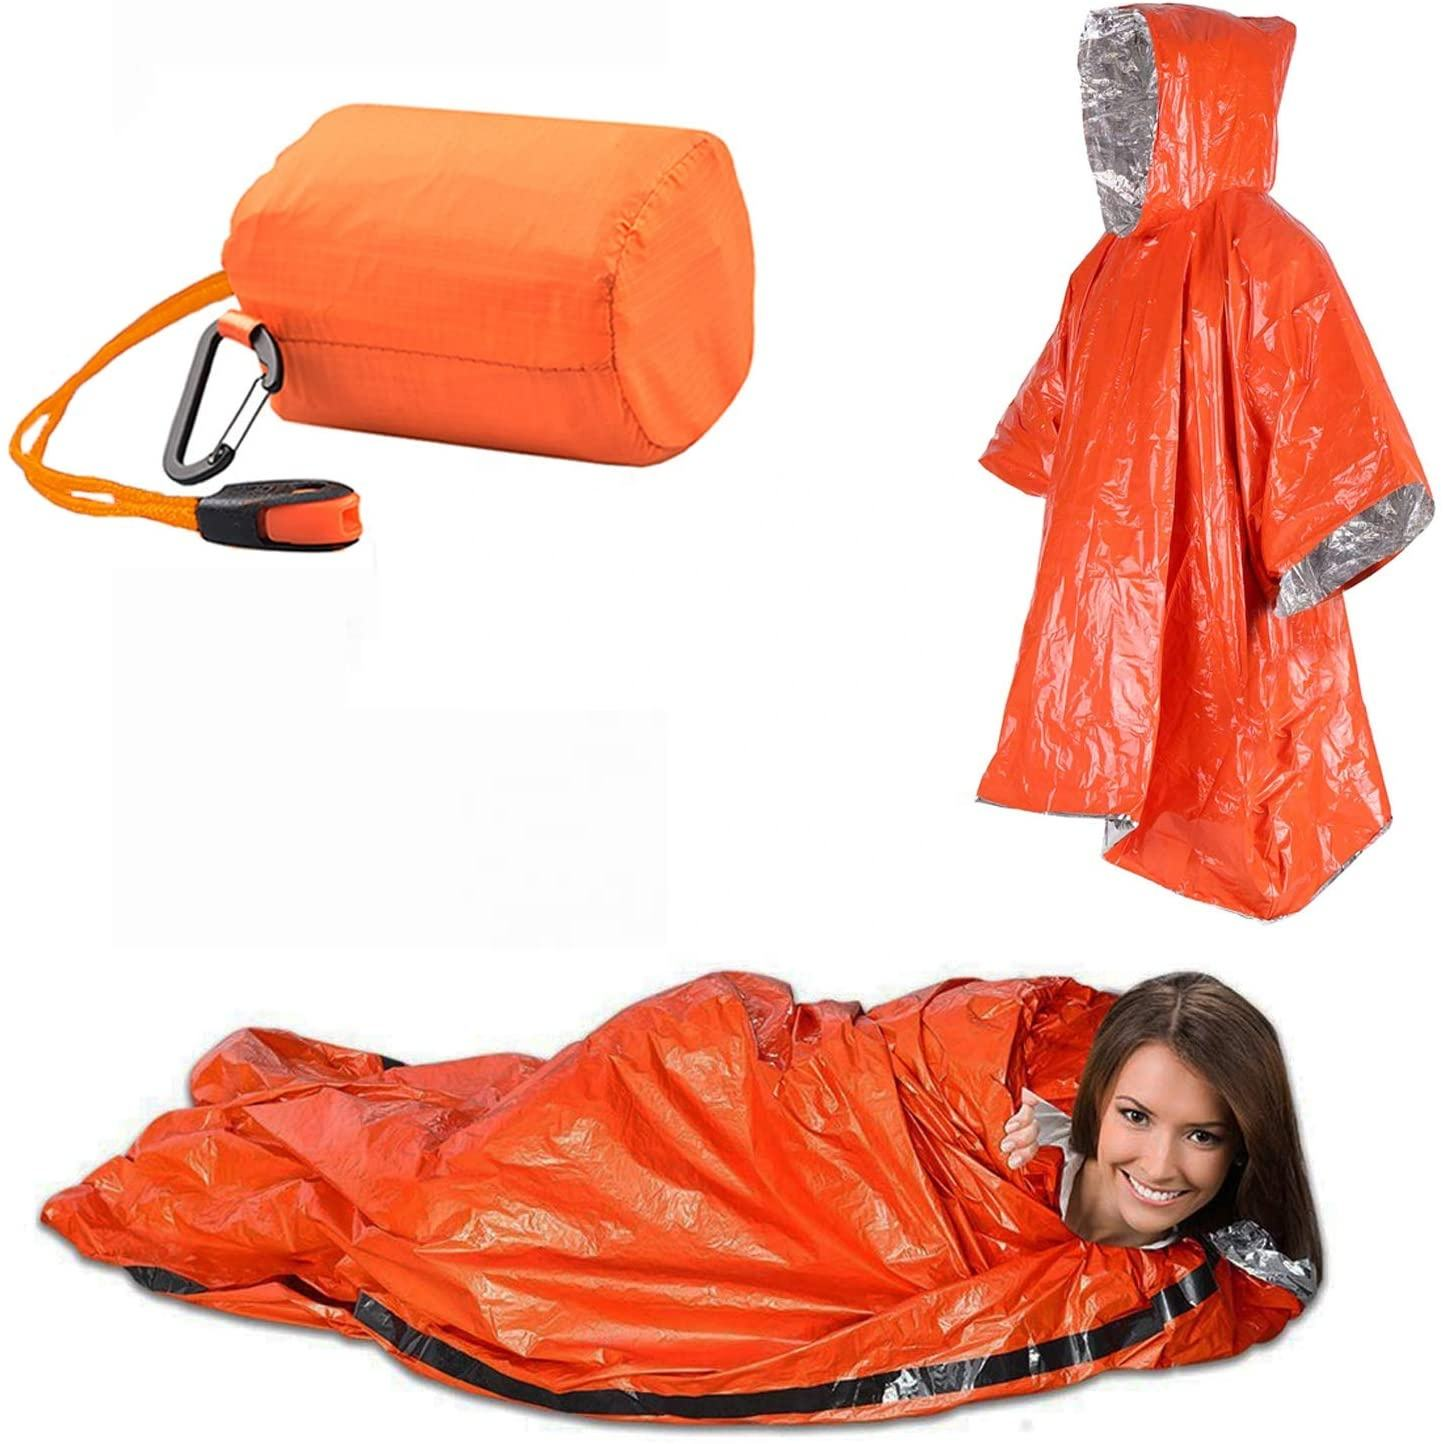 Emergency Sleeping Bag Poncho Survival Sleeping Bags Mylar Emersency Blanket Emergency Raincoat